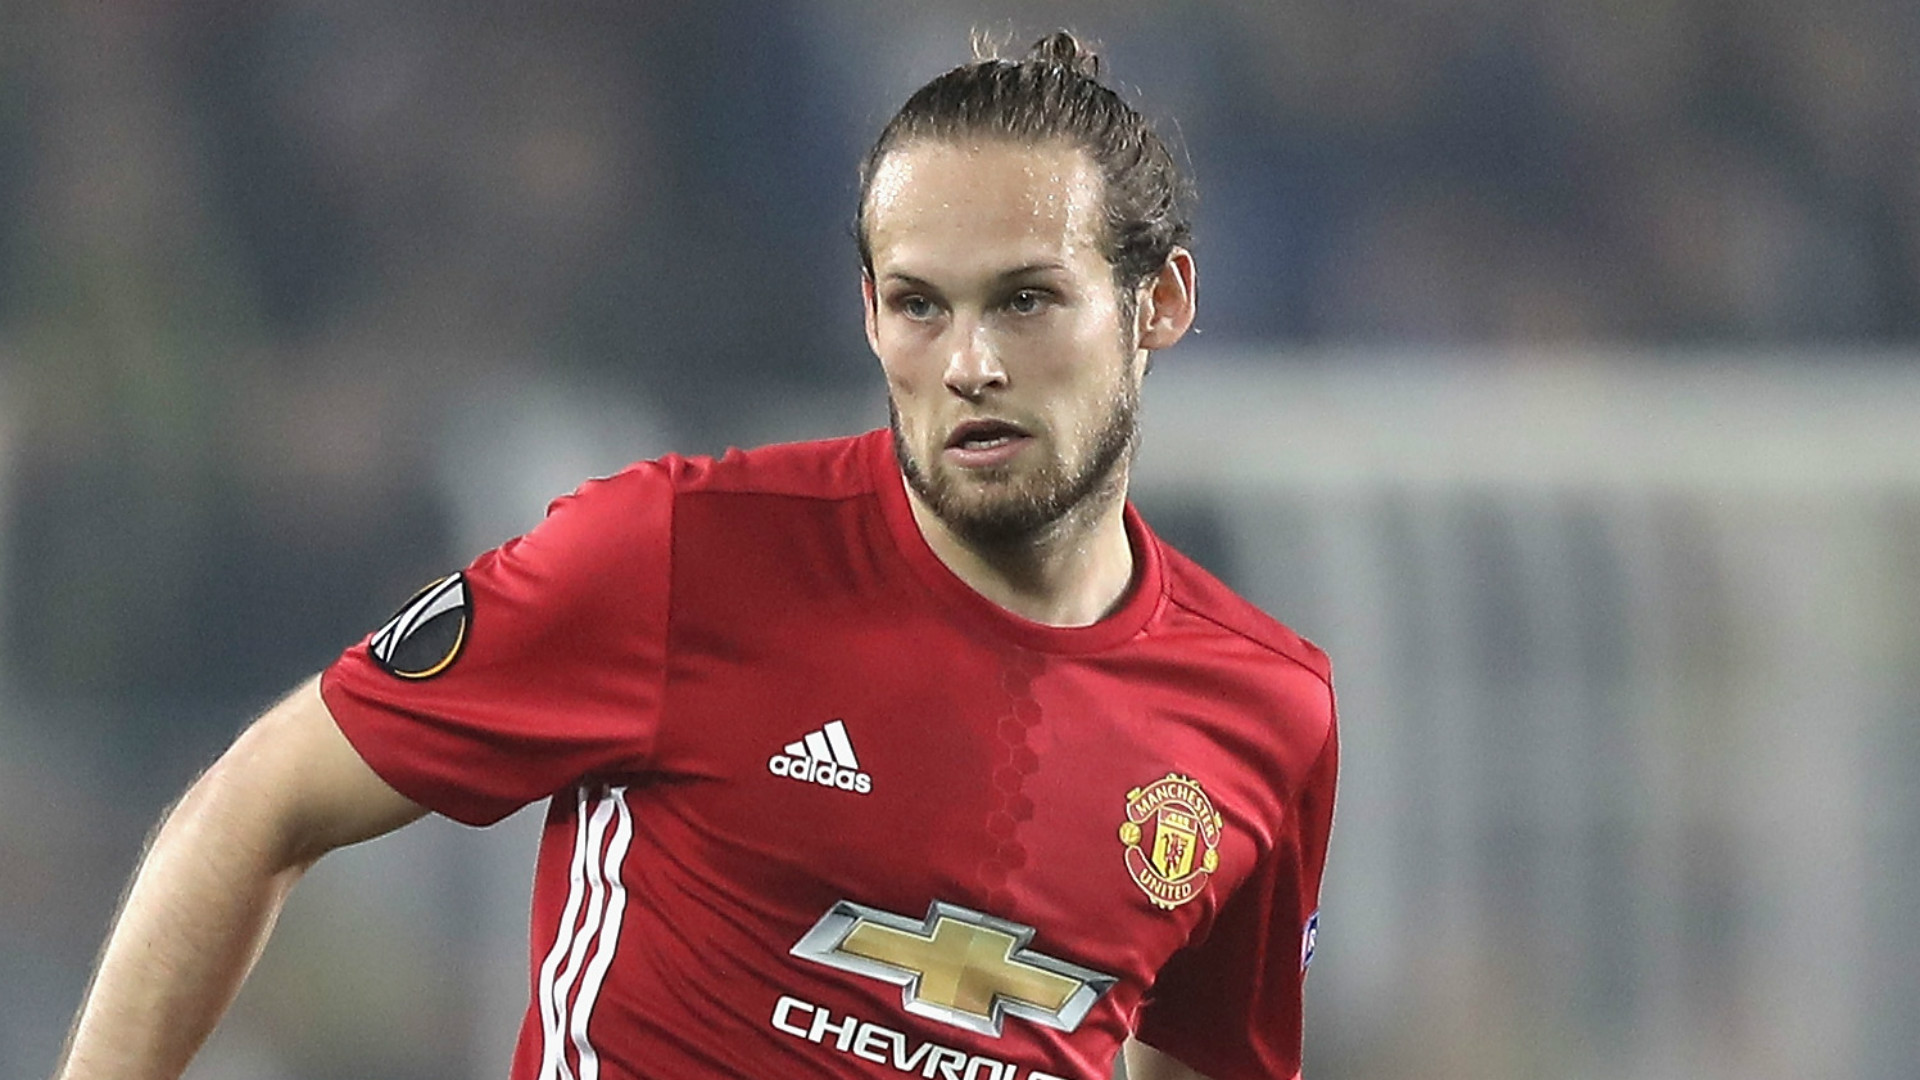 Neville XI Daley Blind